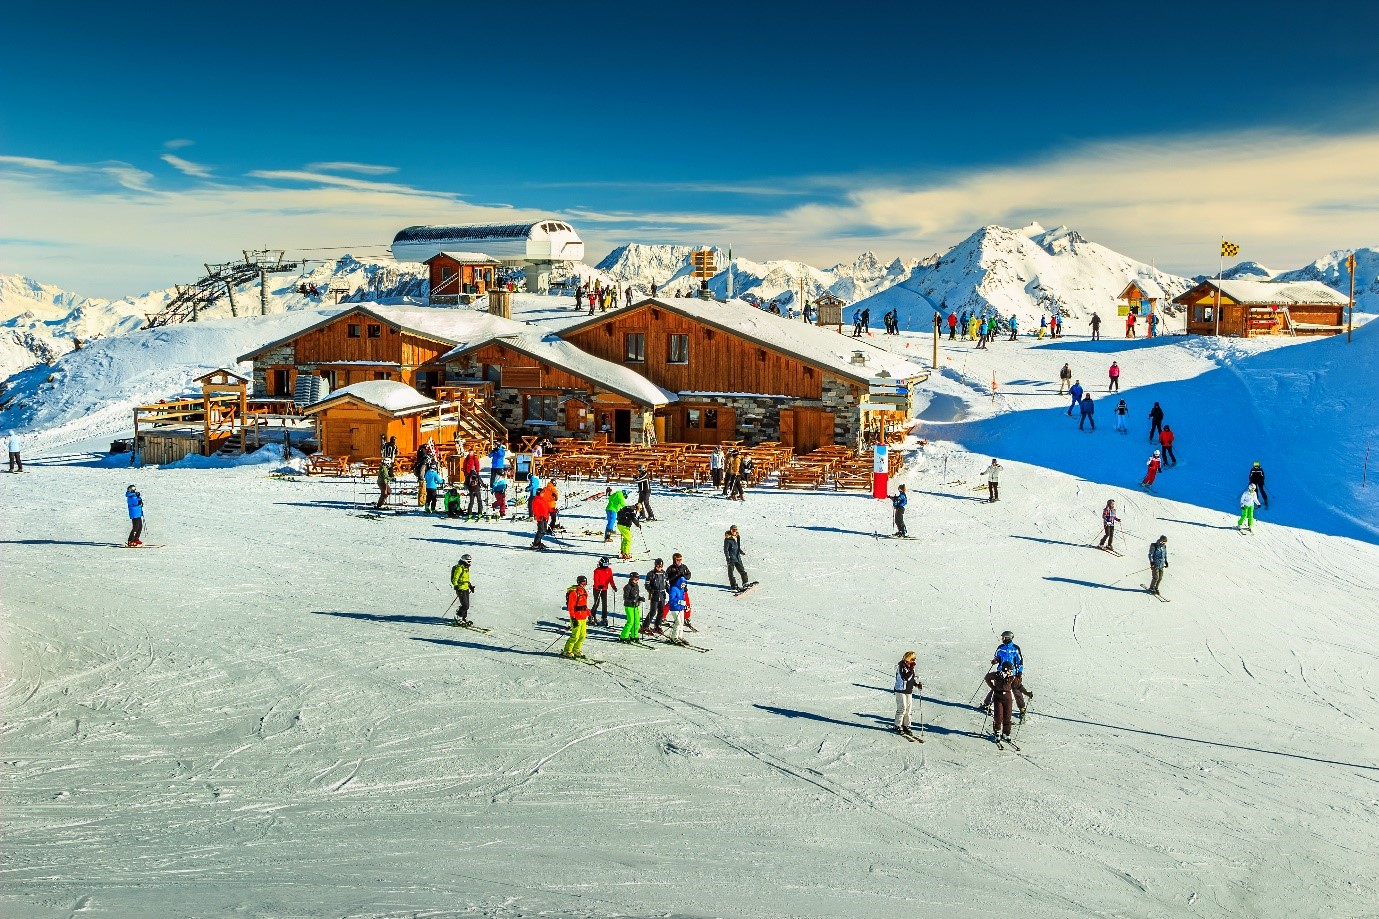 Like to visit a casino when skiing? Try Chamonix where there is one of the best casinos in ski resorts